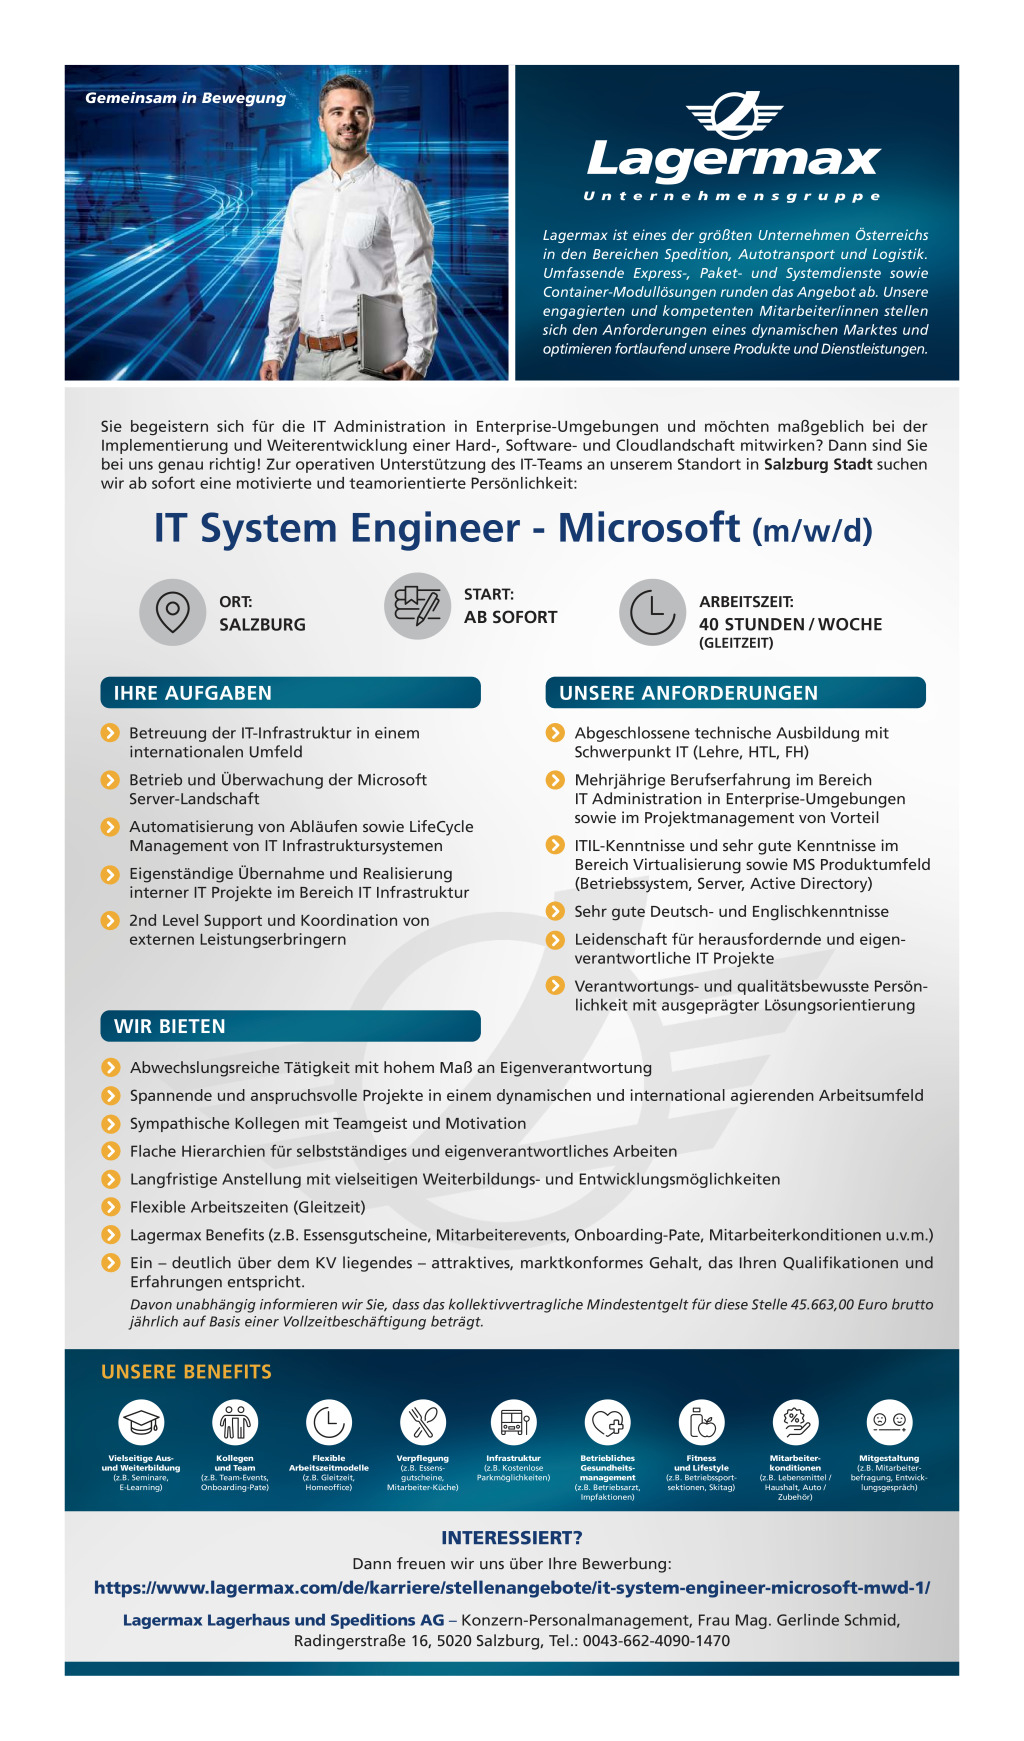 Lagermax IT System Engineer